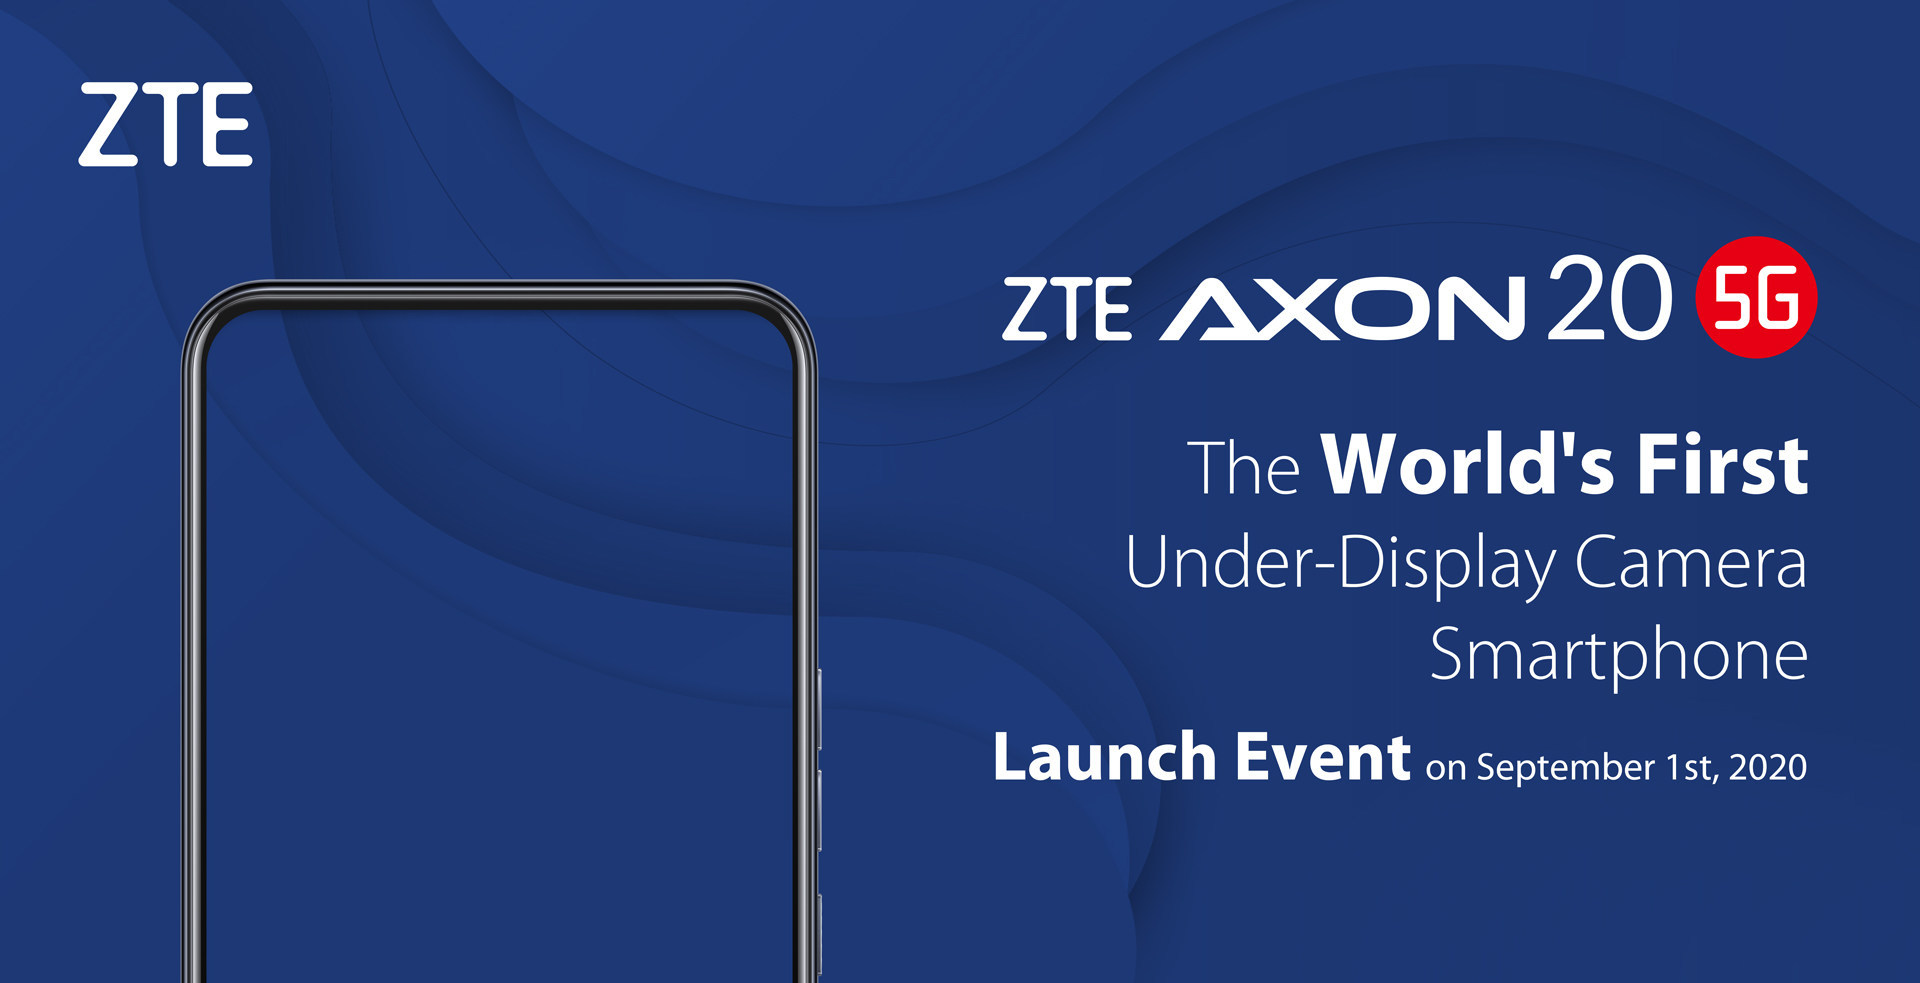 ZTE's Axon 20 5G will have the first under-display camera | Engadget